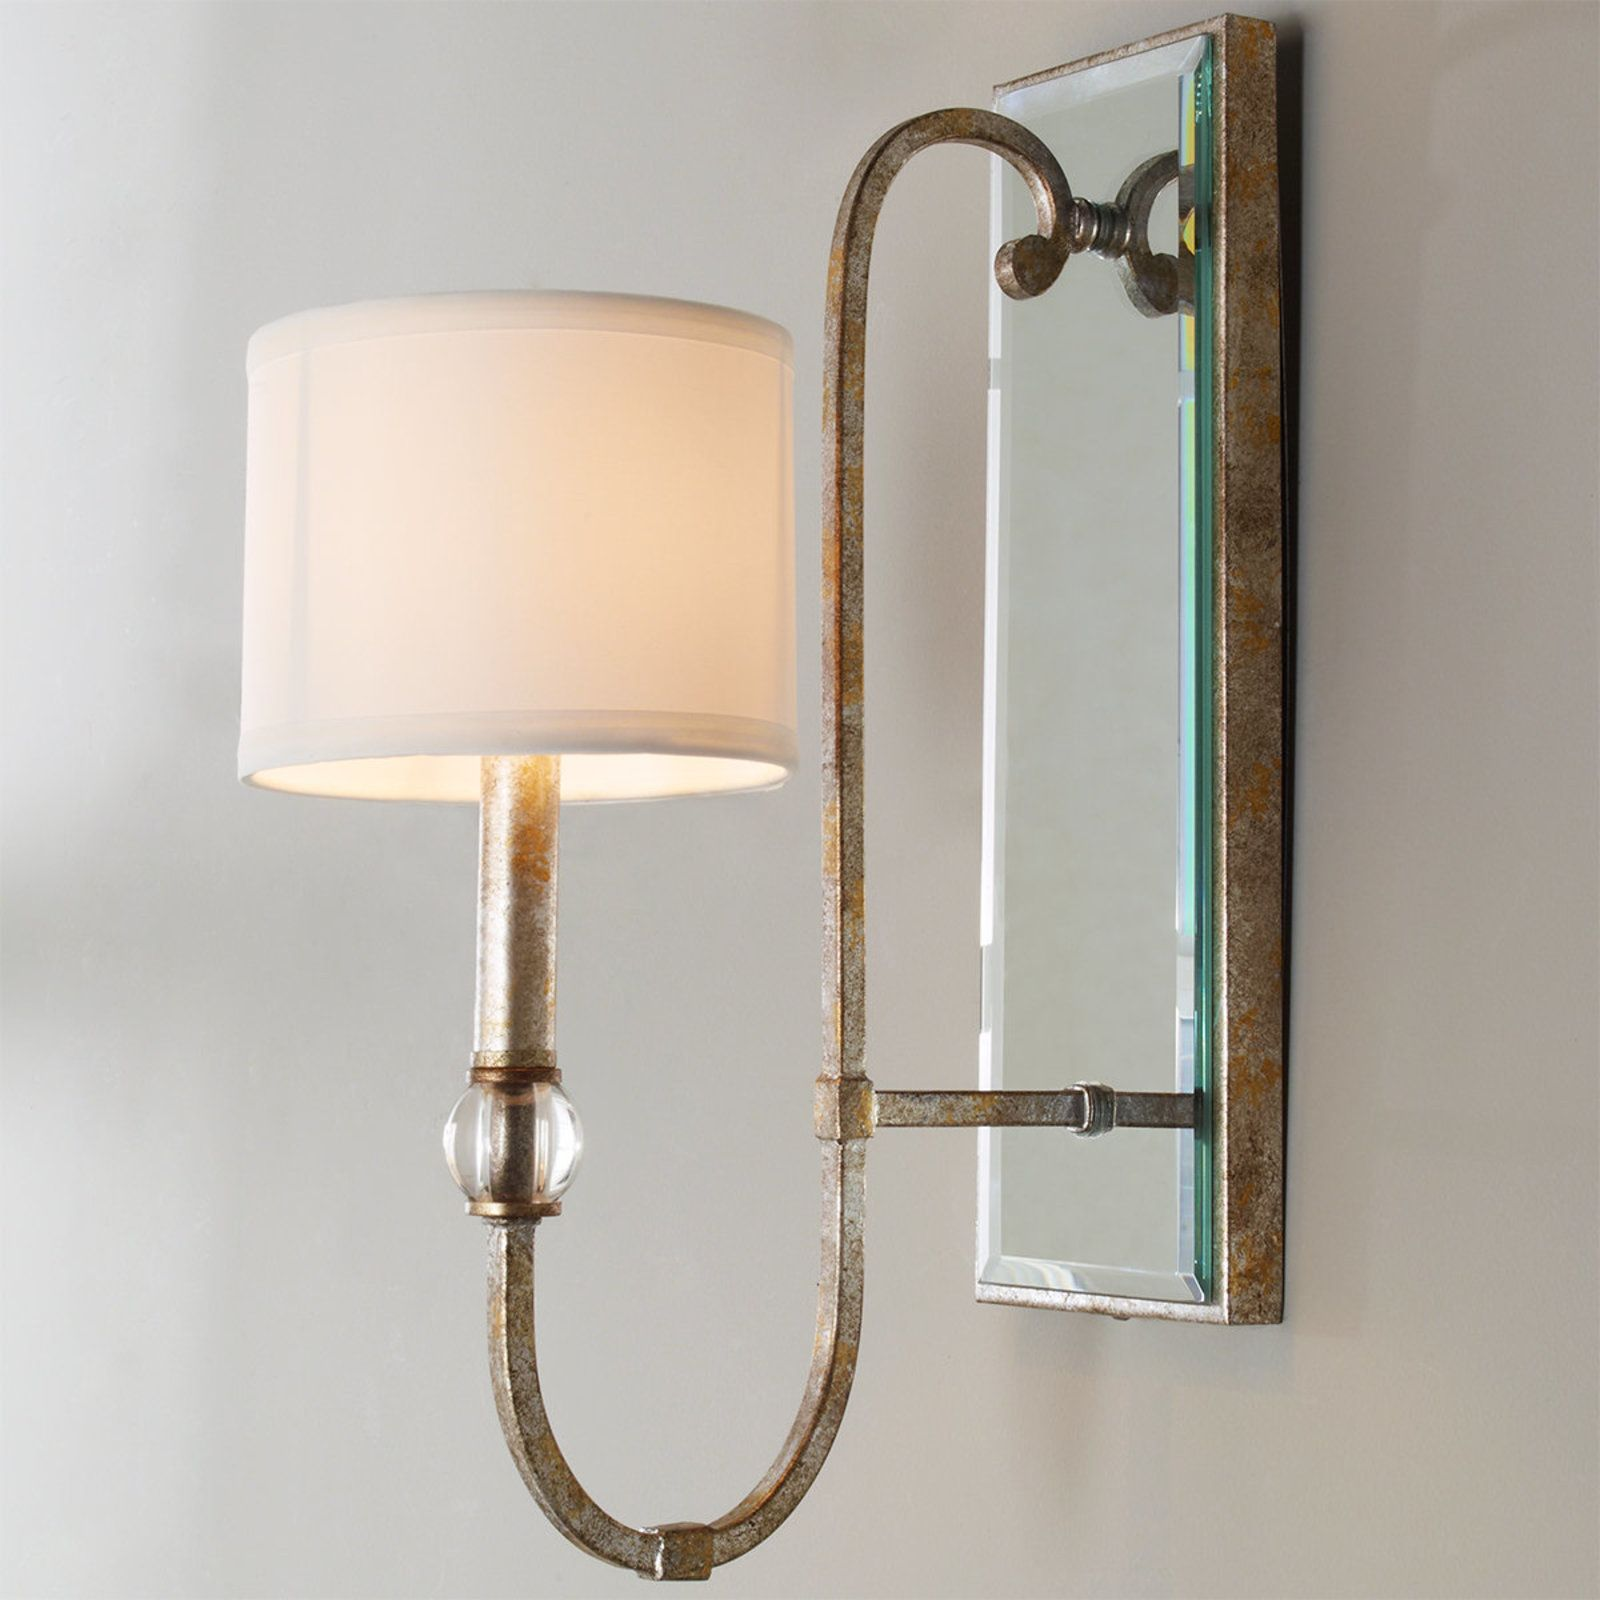 Classic Traditions Crystal Sconce Crystal Sconce Sconces Crystal Wall Sconces